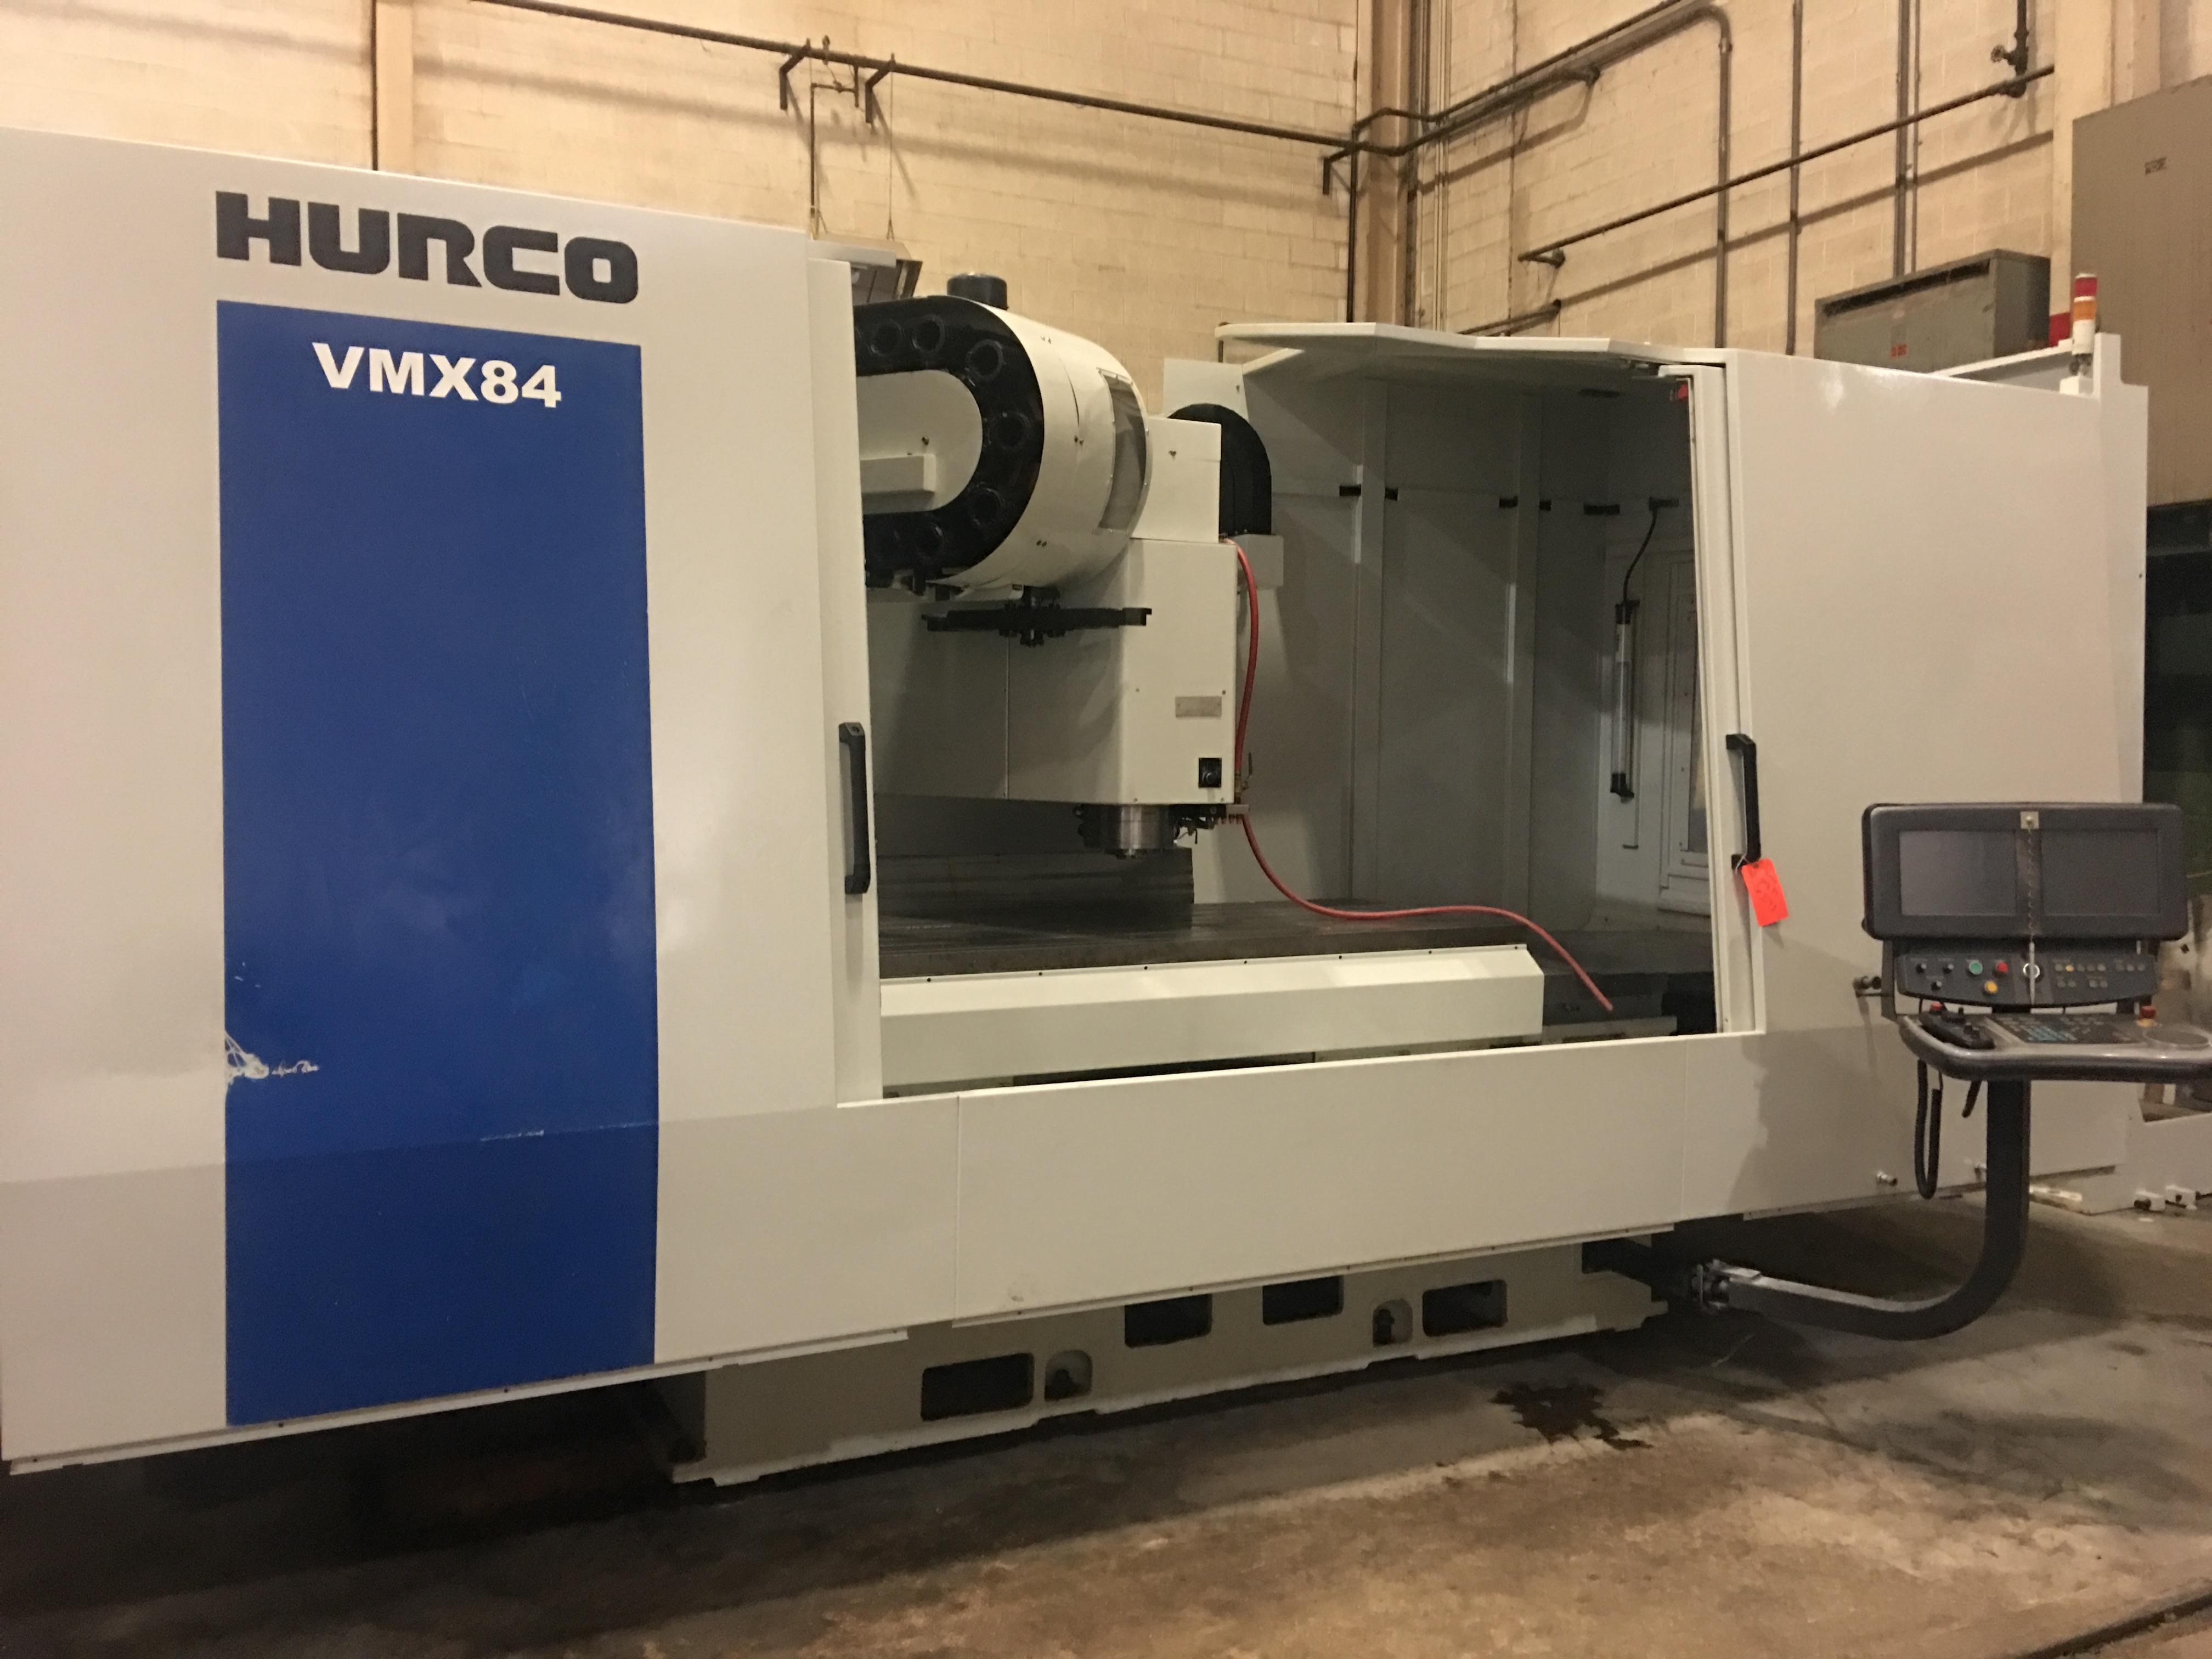 HURCO | Buy and Sell Surplus CNC Machinery | S&M Machinery Sales